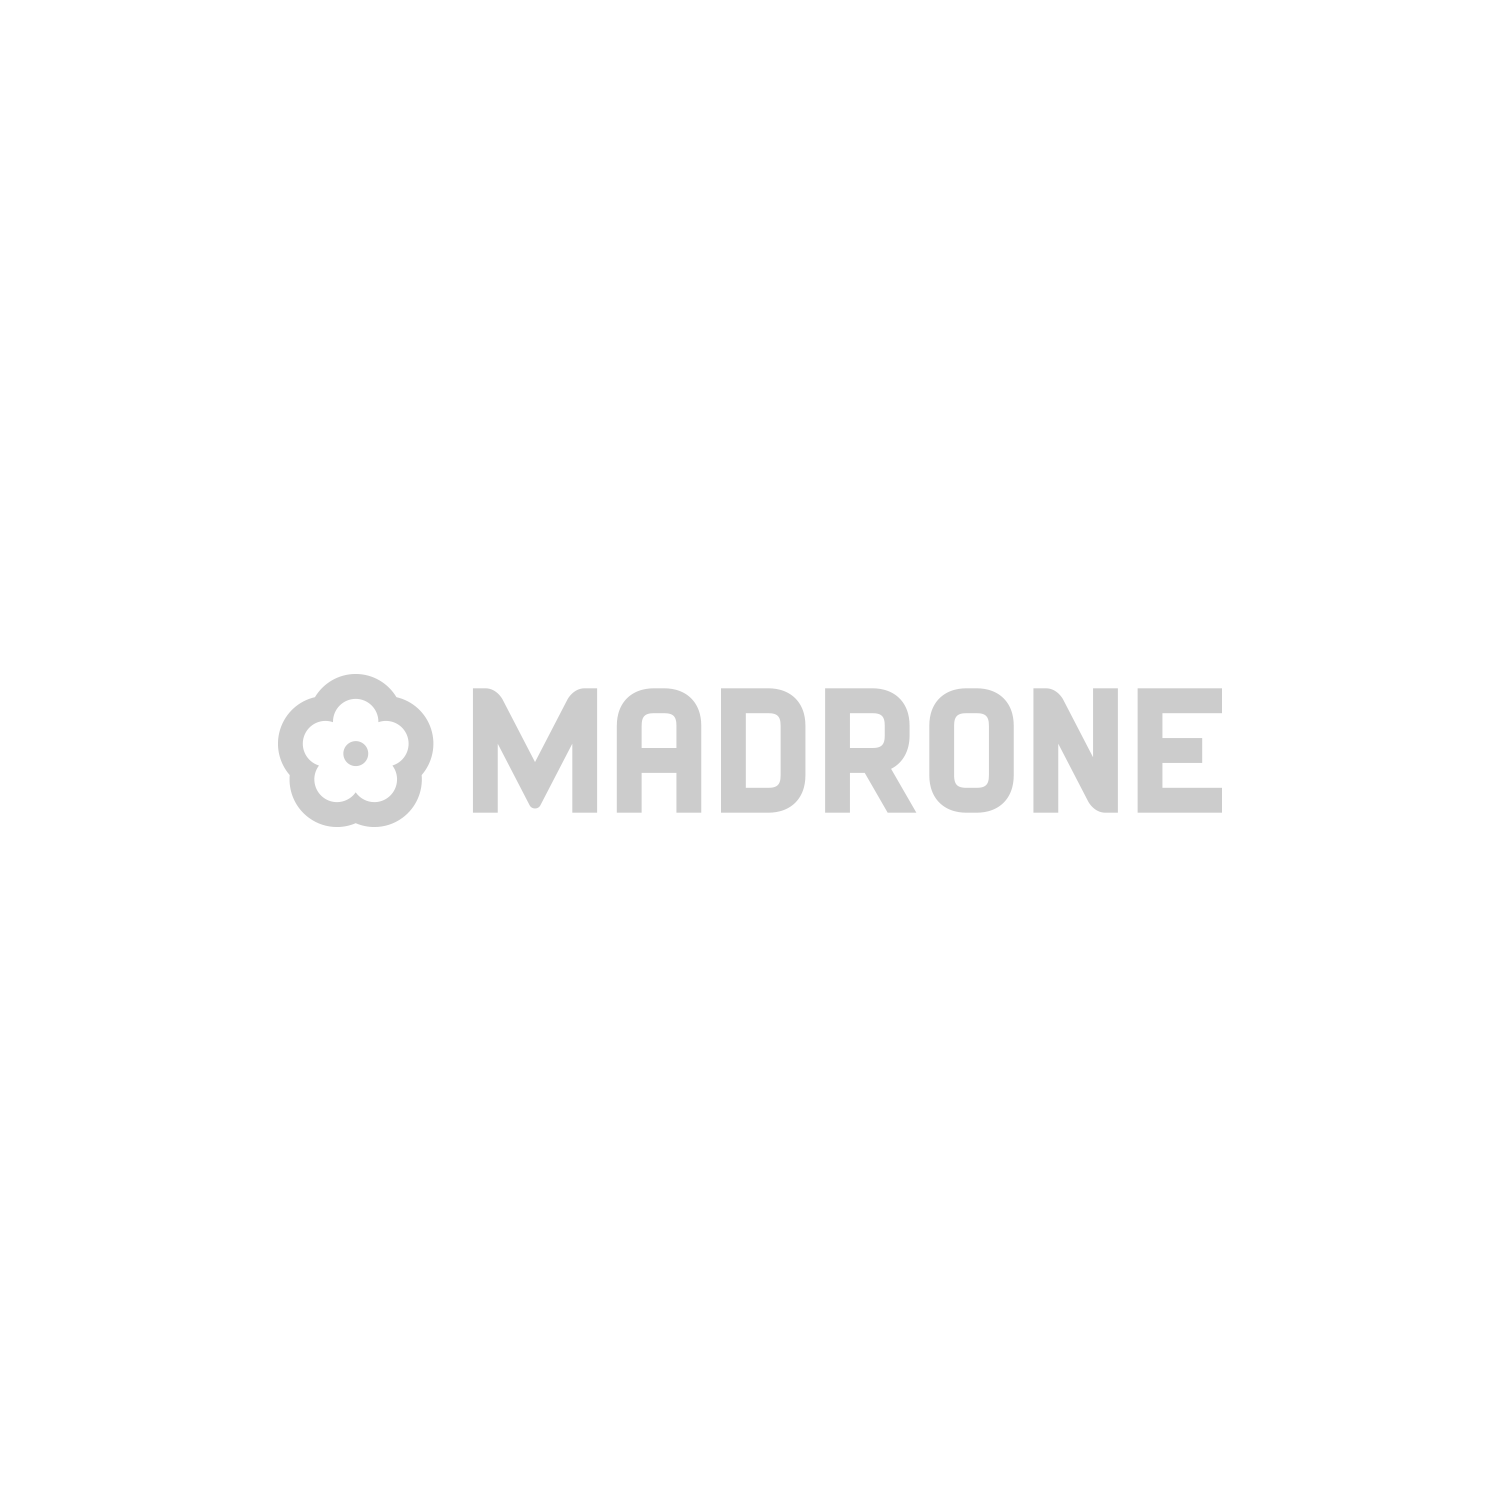 Madrone_Logo.png